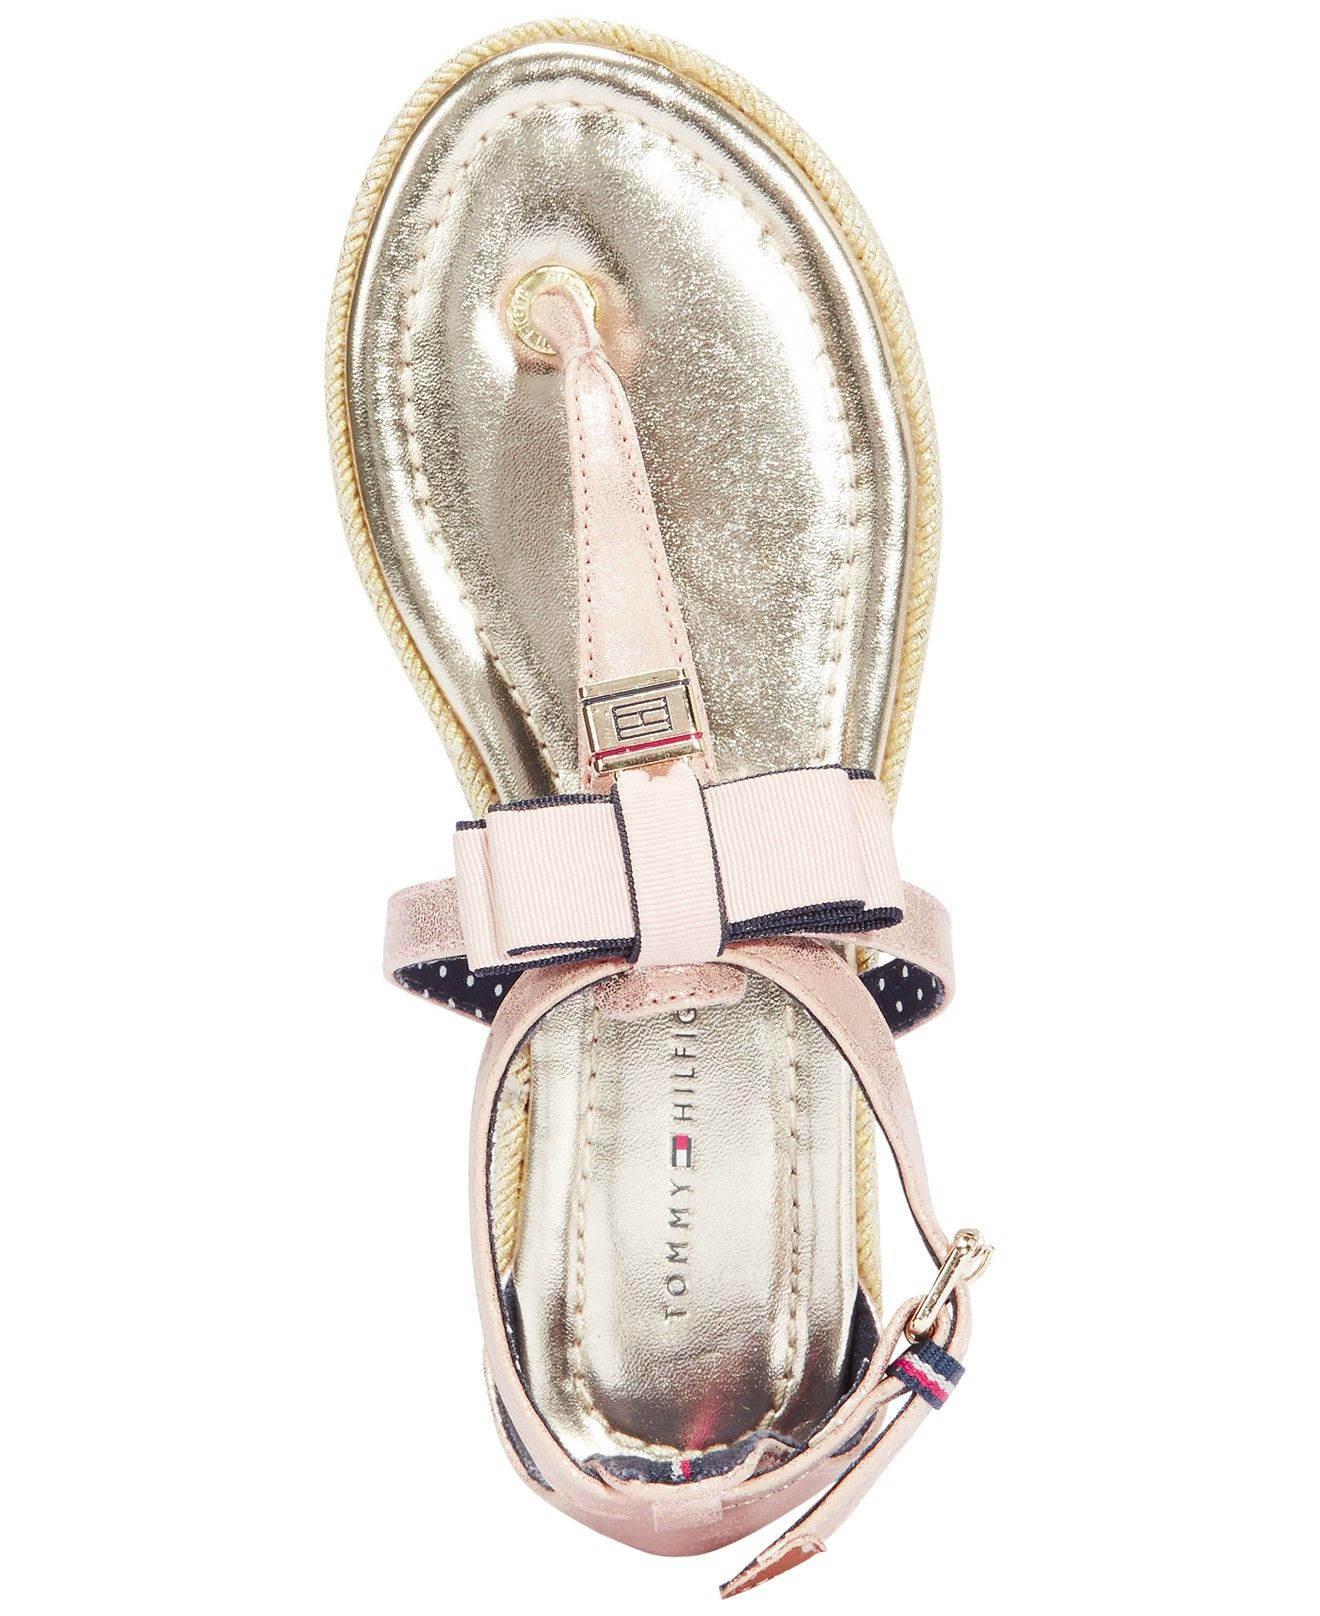 122249e0 Tommy Hilfiger Girls' or Little Girls' Sandy Lock Charm Sandals - Kids  Girls Shoes - Macy's